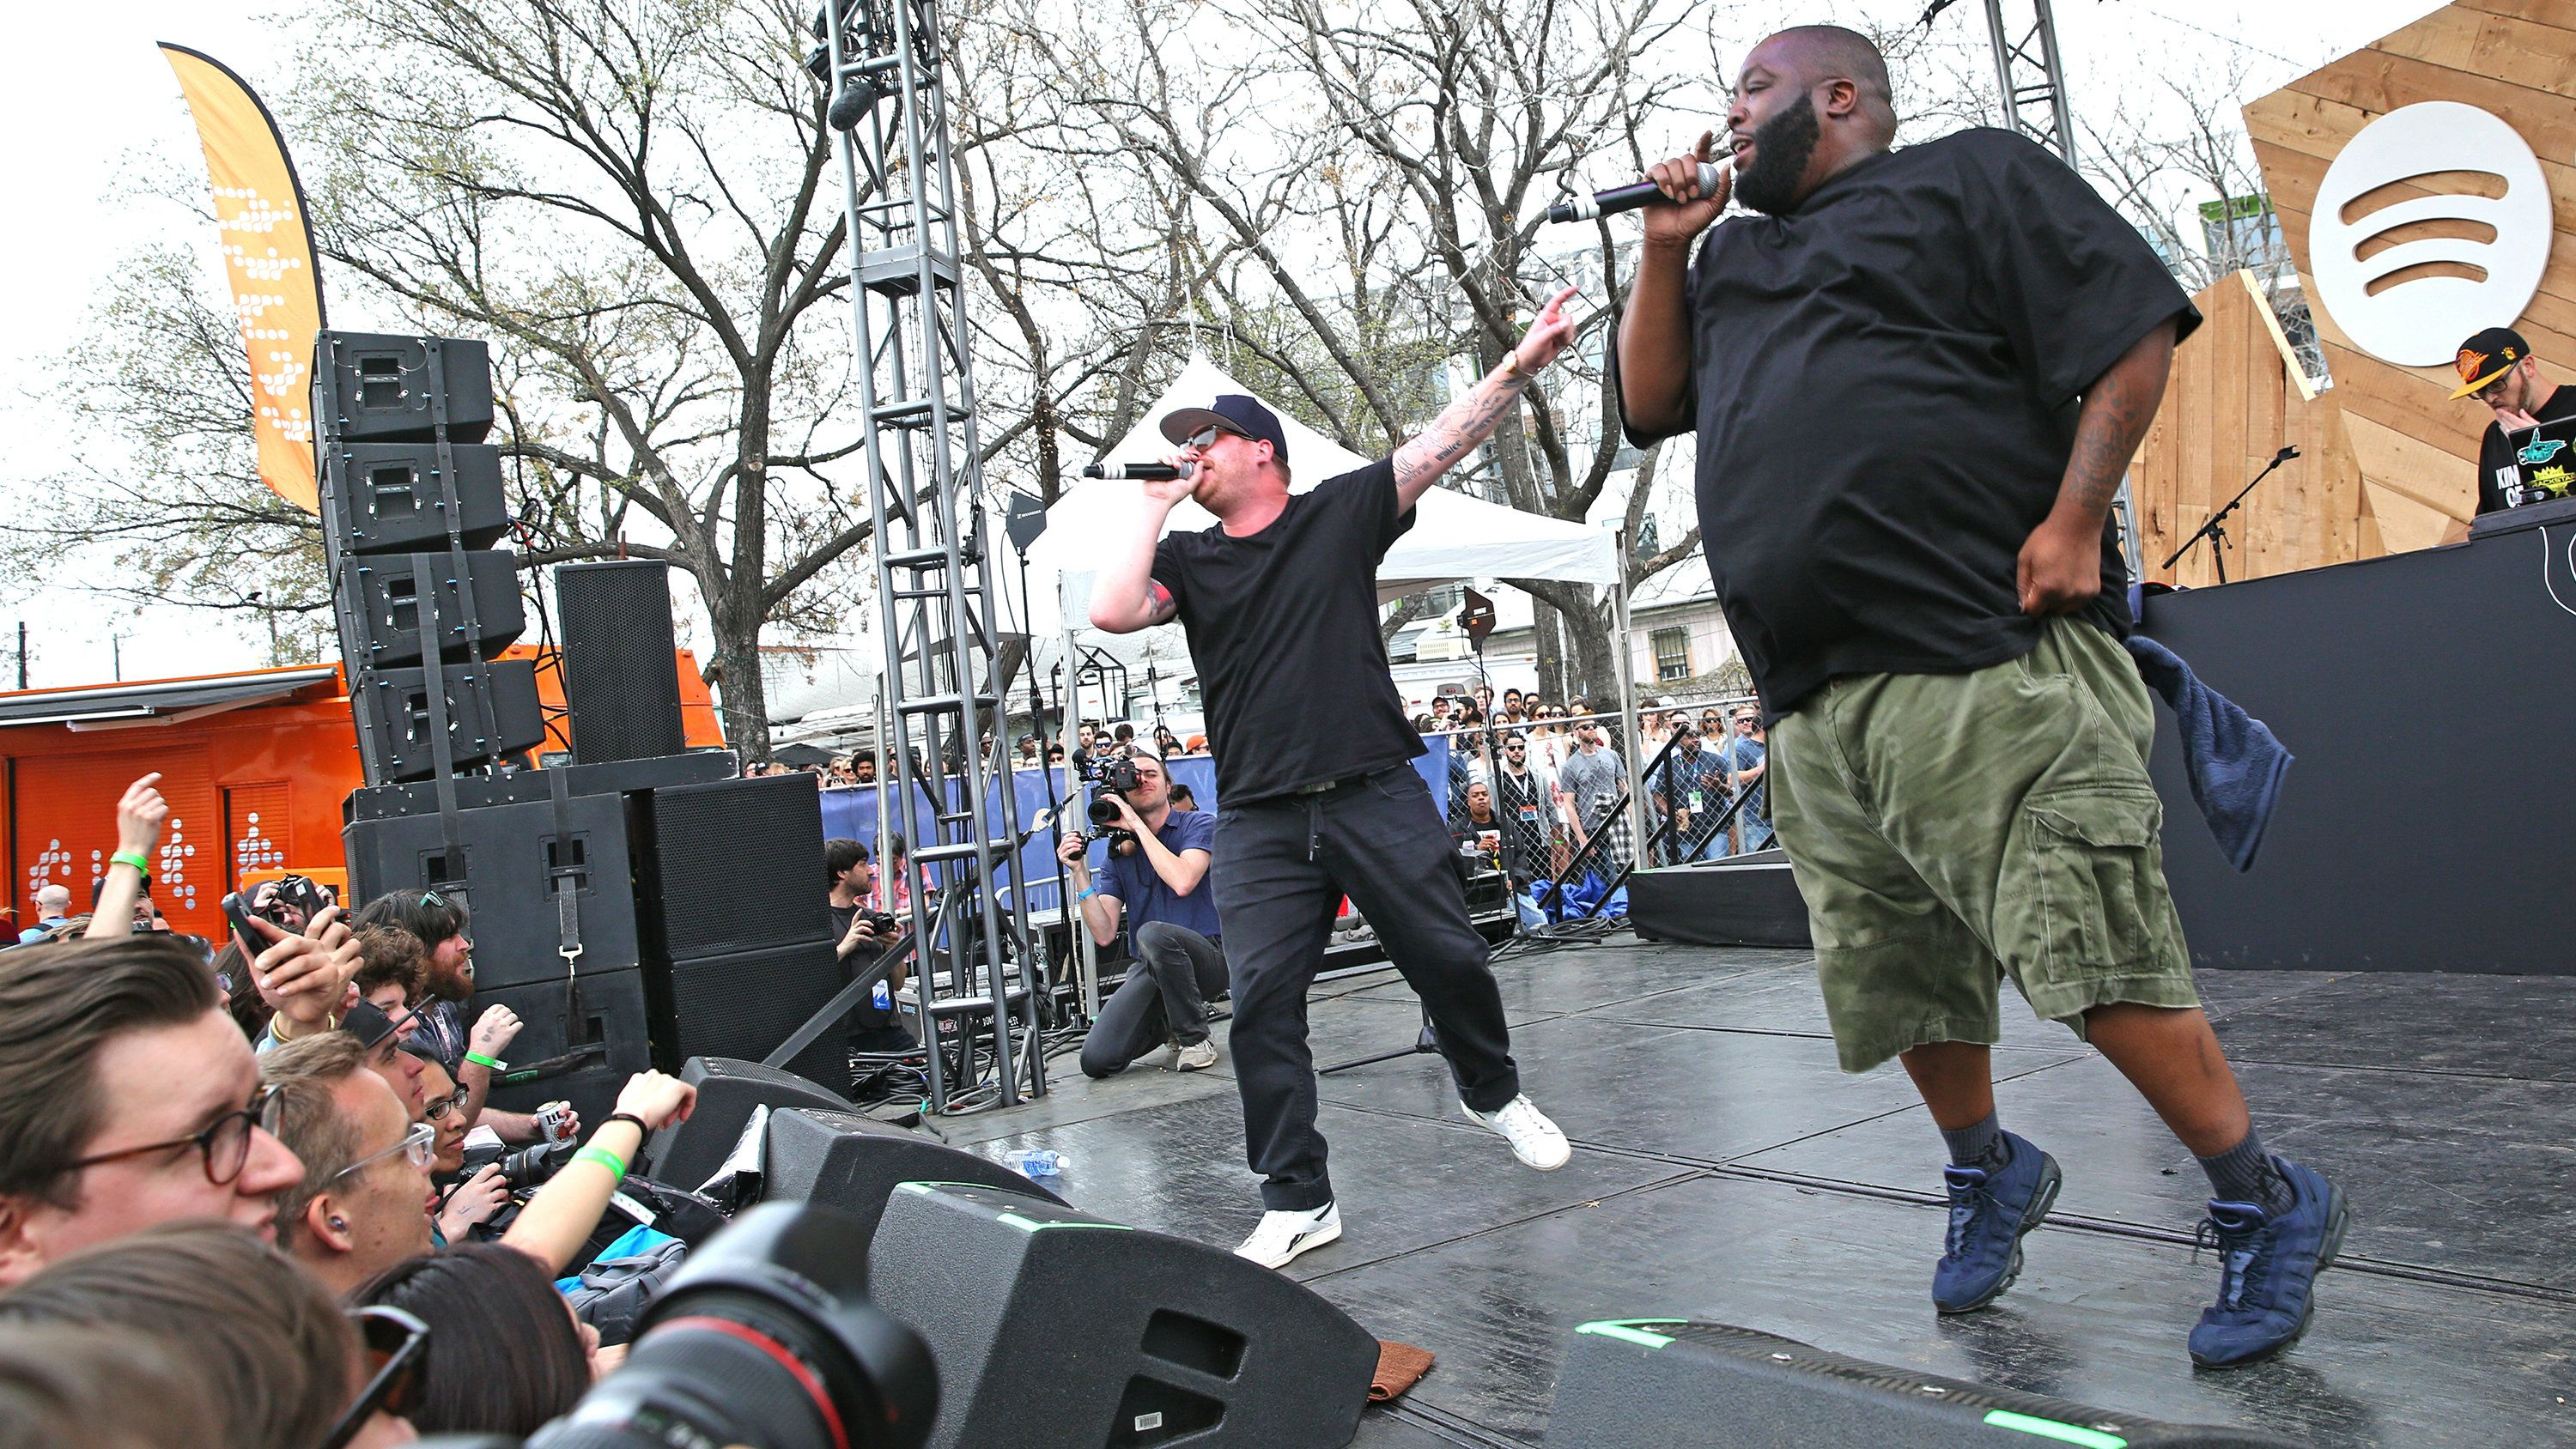 Run The Jewels perform at the Spotify House on Monday, March 16, 2015, in Austin, TX.